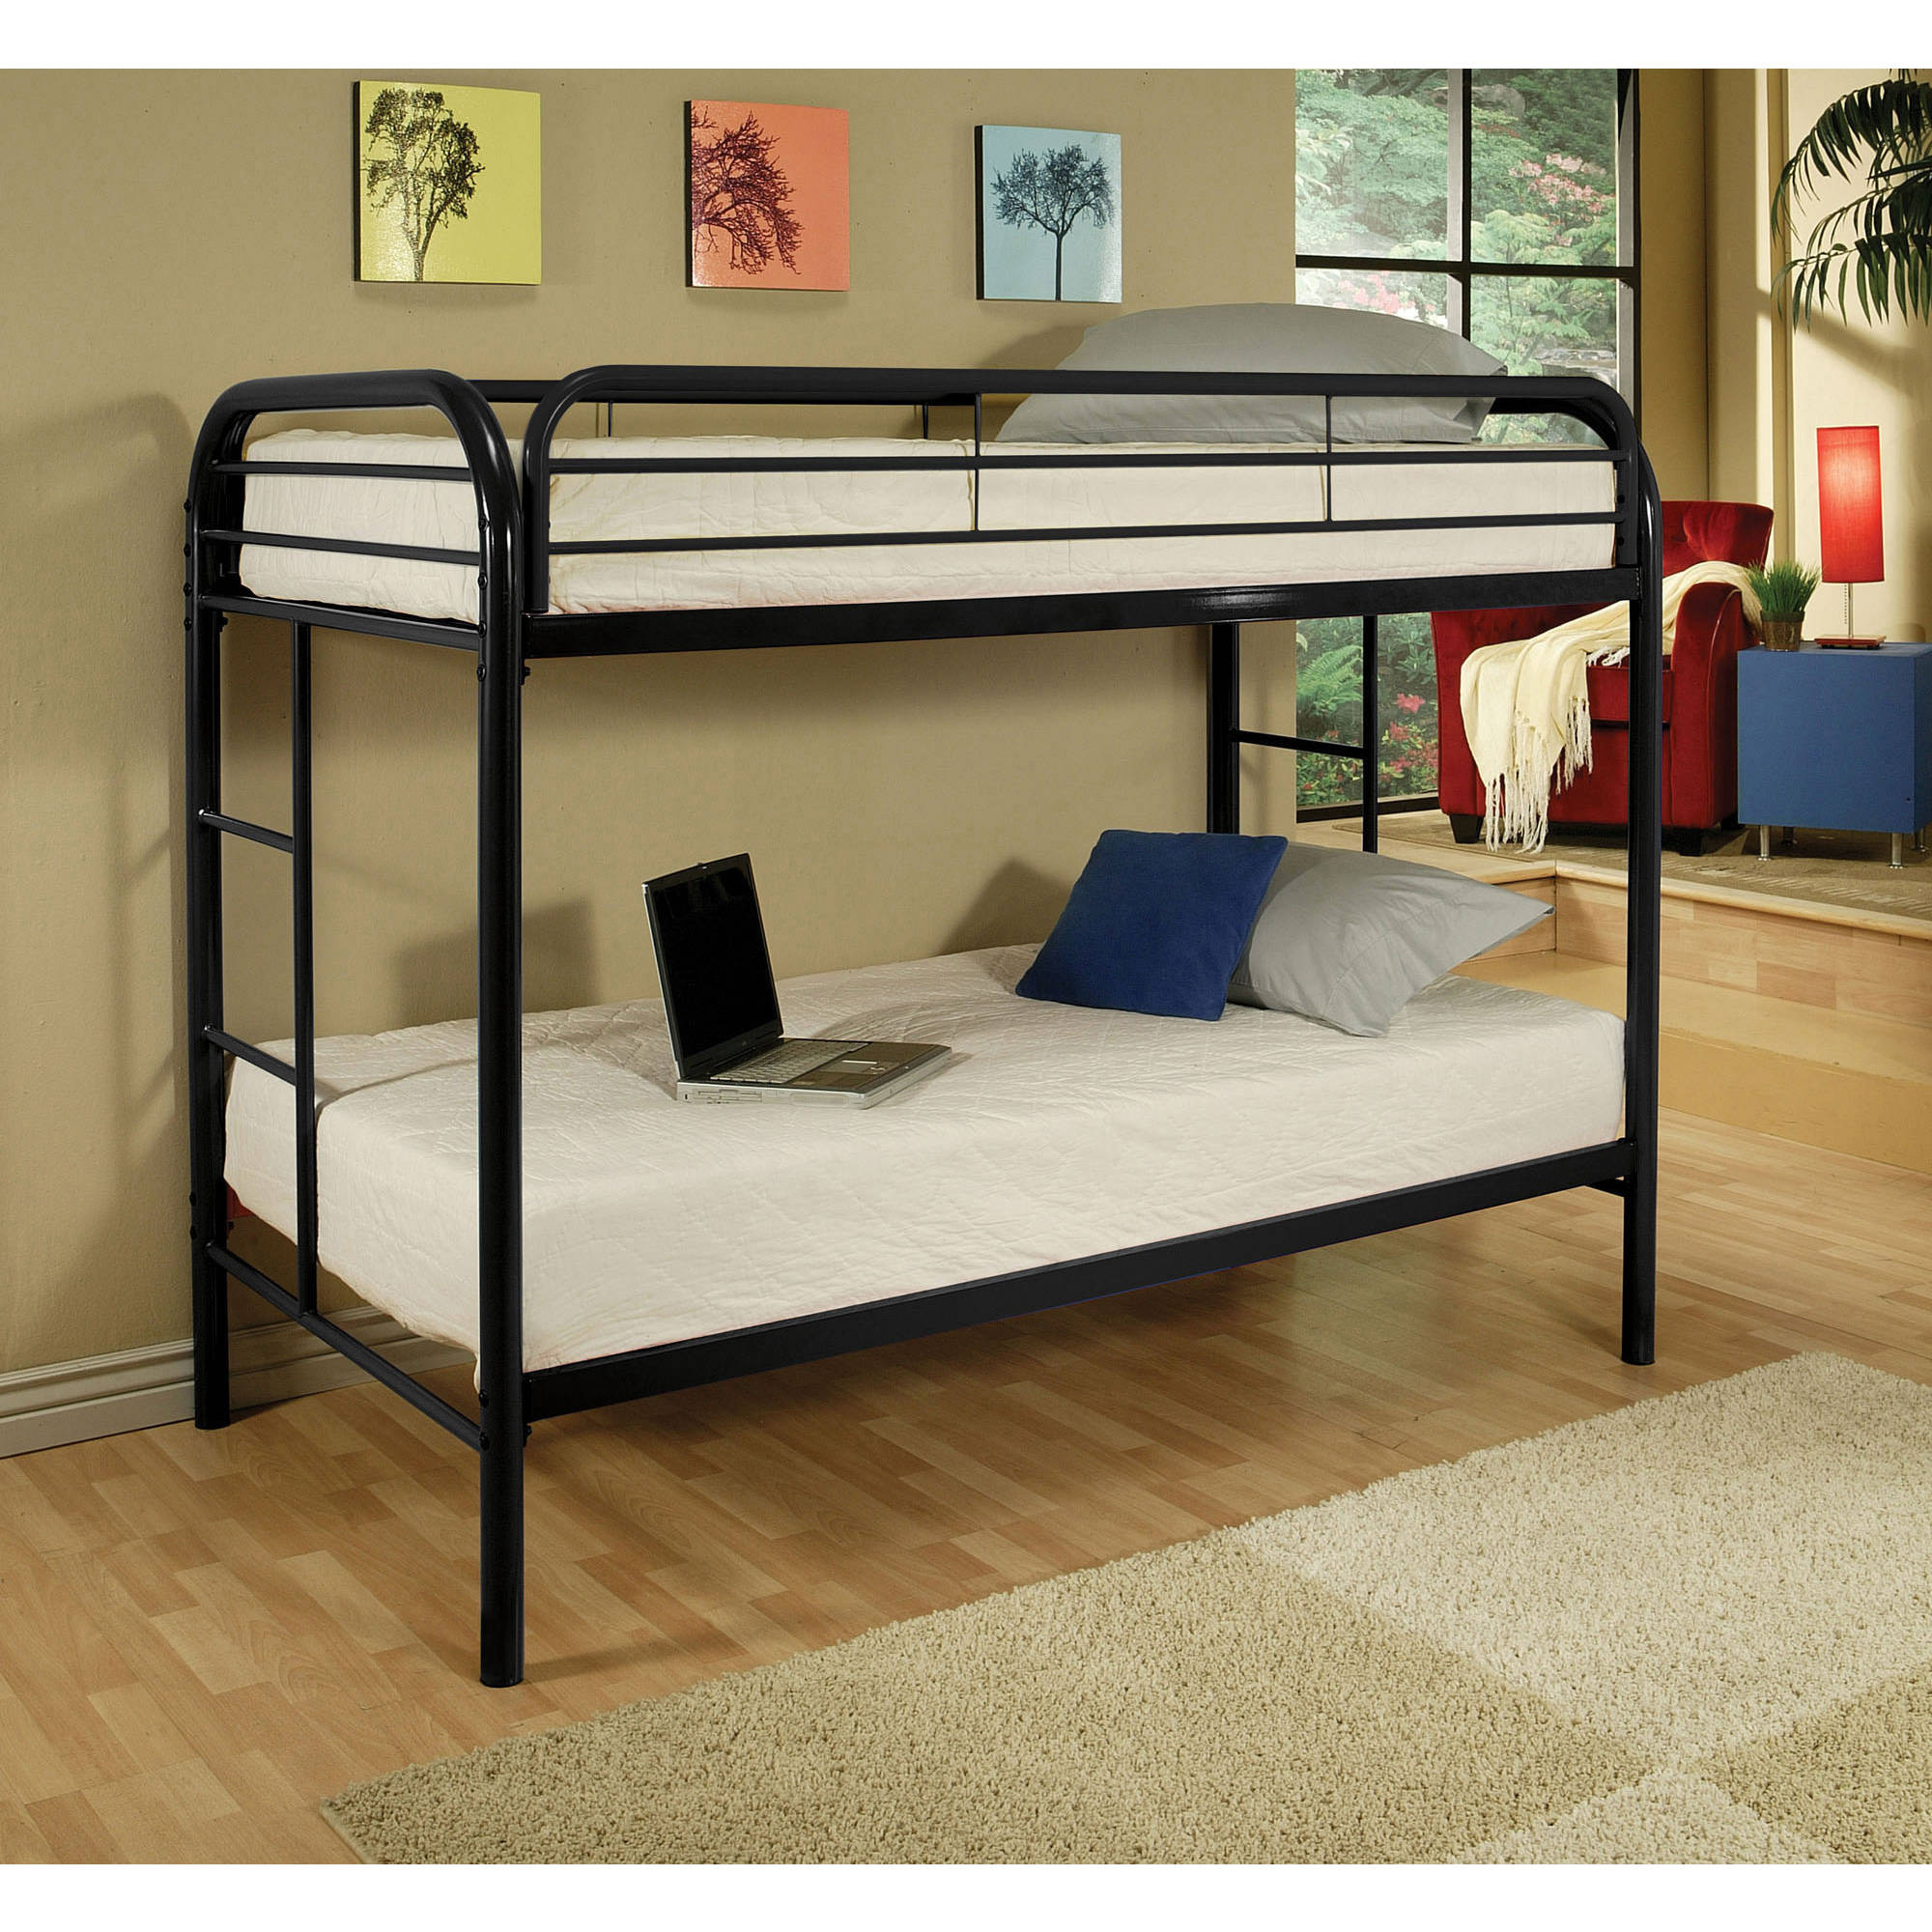 Acme Eclipse Twin Over Twin Metal Bunk Bed, Multiple Colors